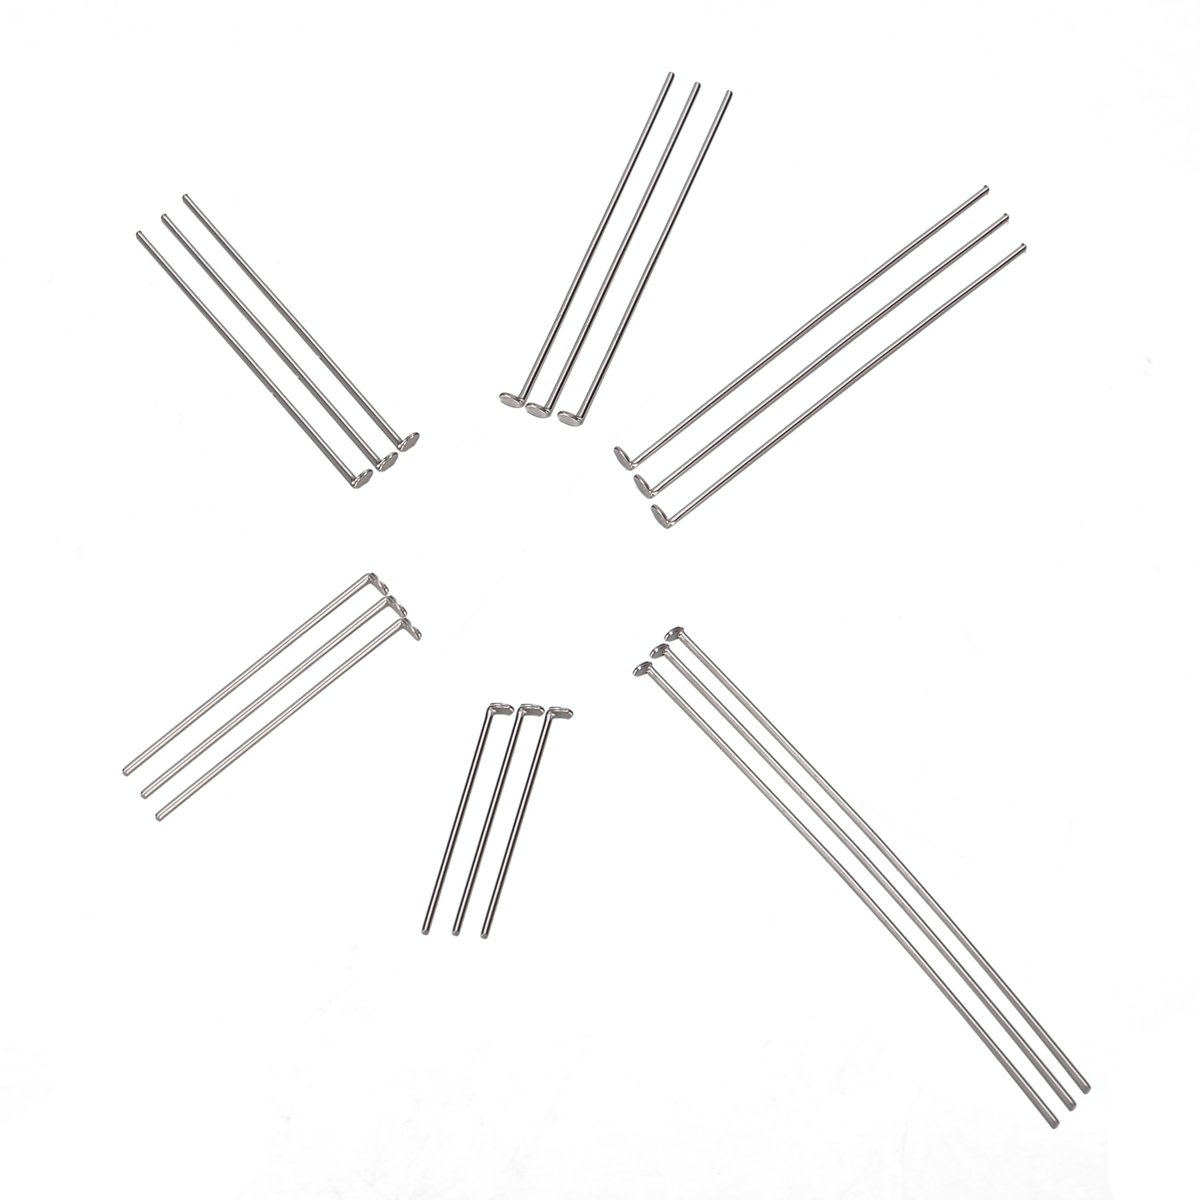 VALYRIA 1500pcs Stainless Steel Head Pins Findings 20mm-50mm(6/8